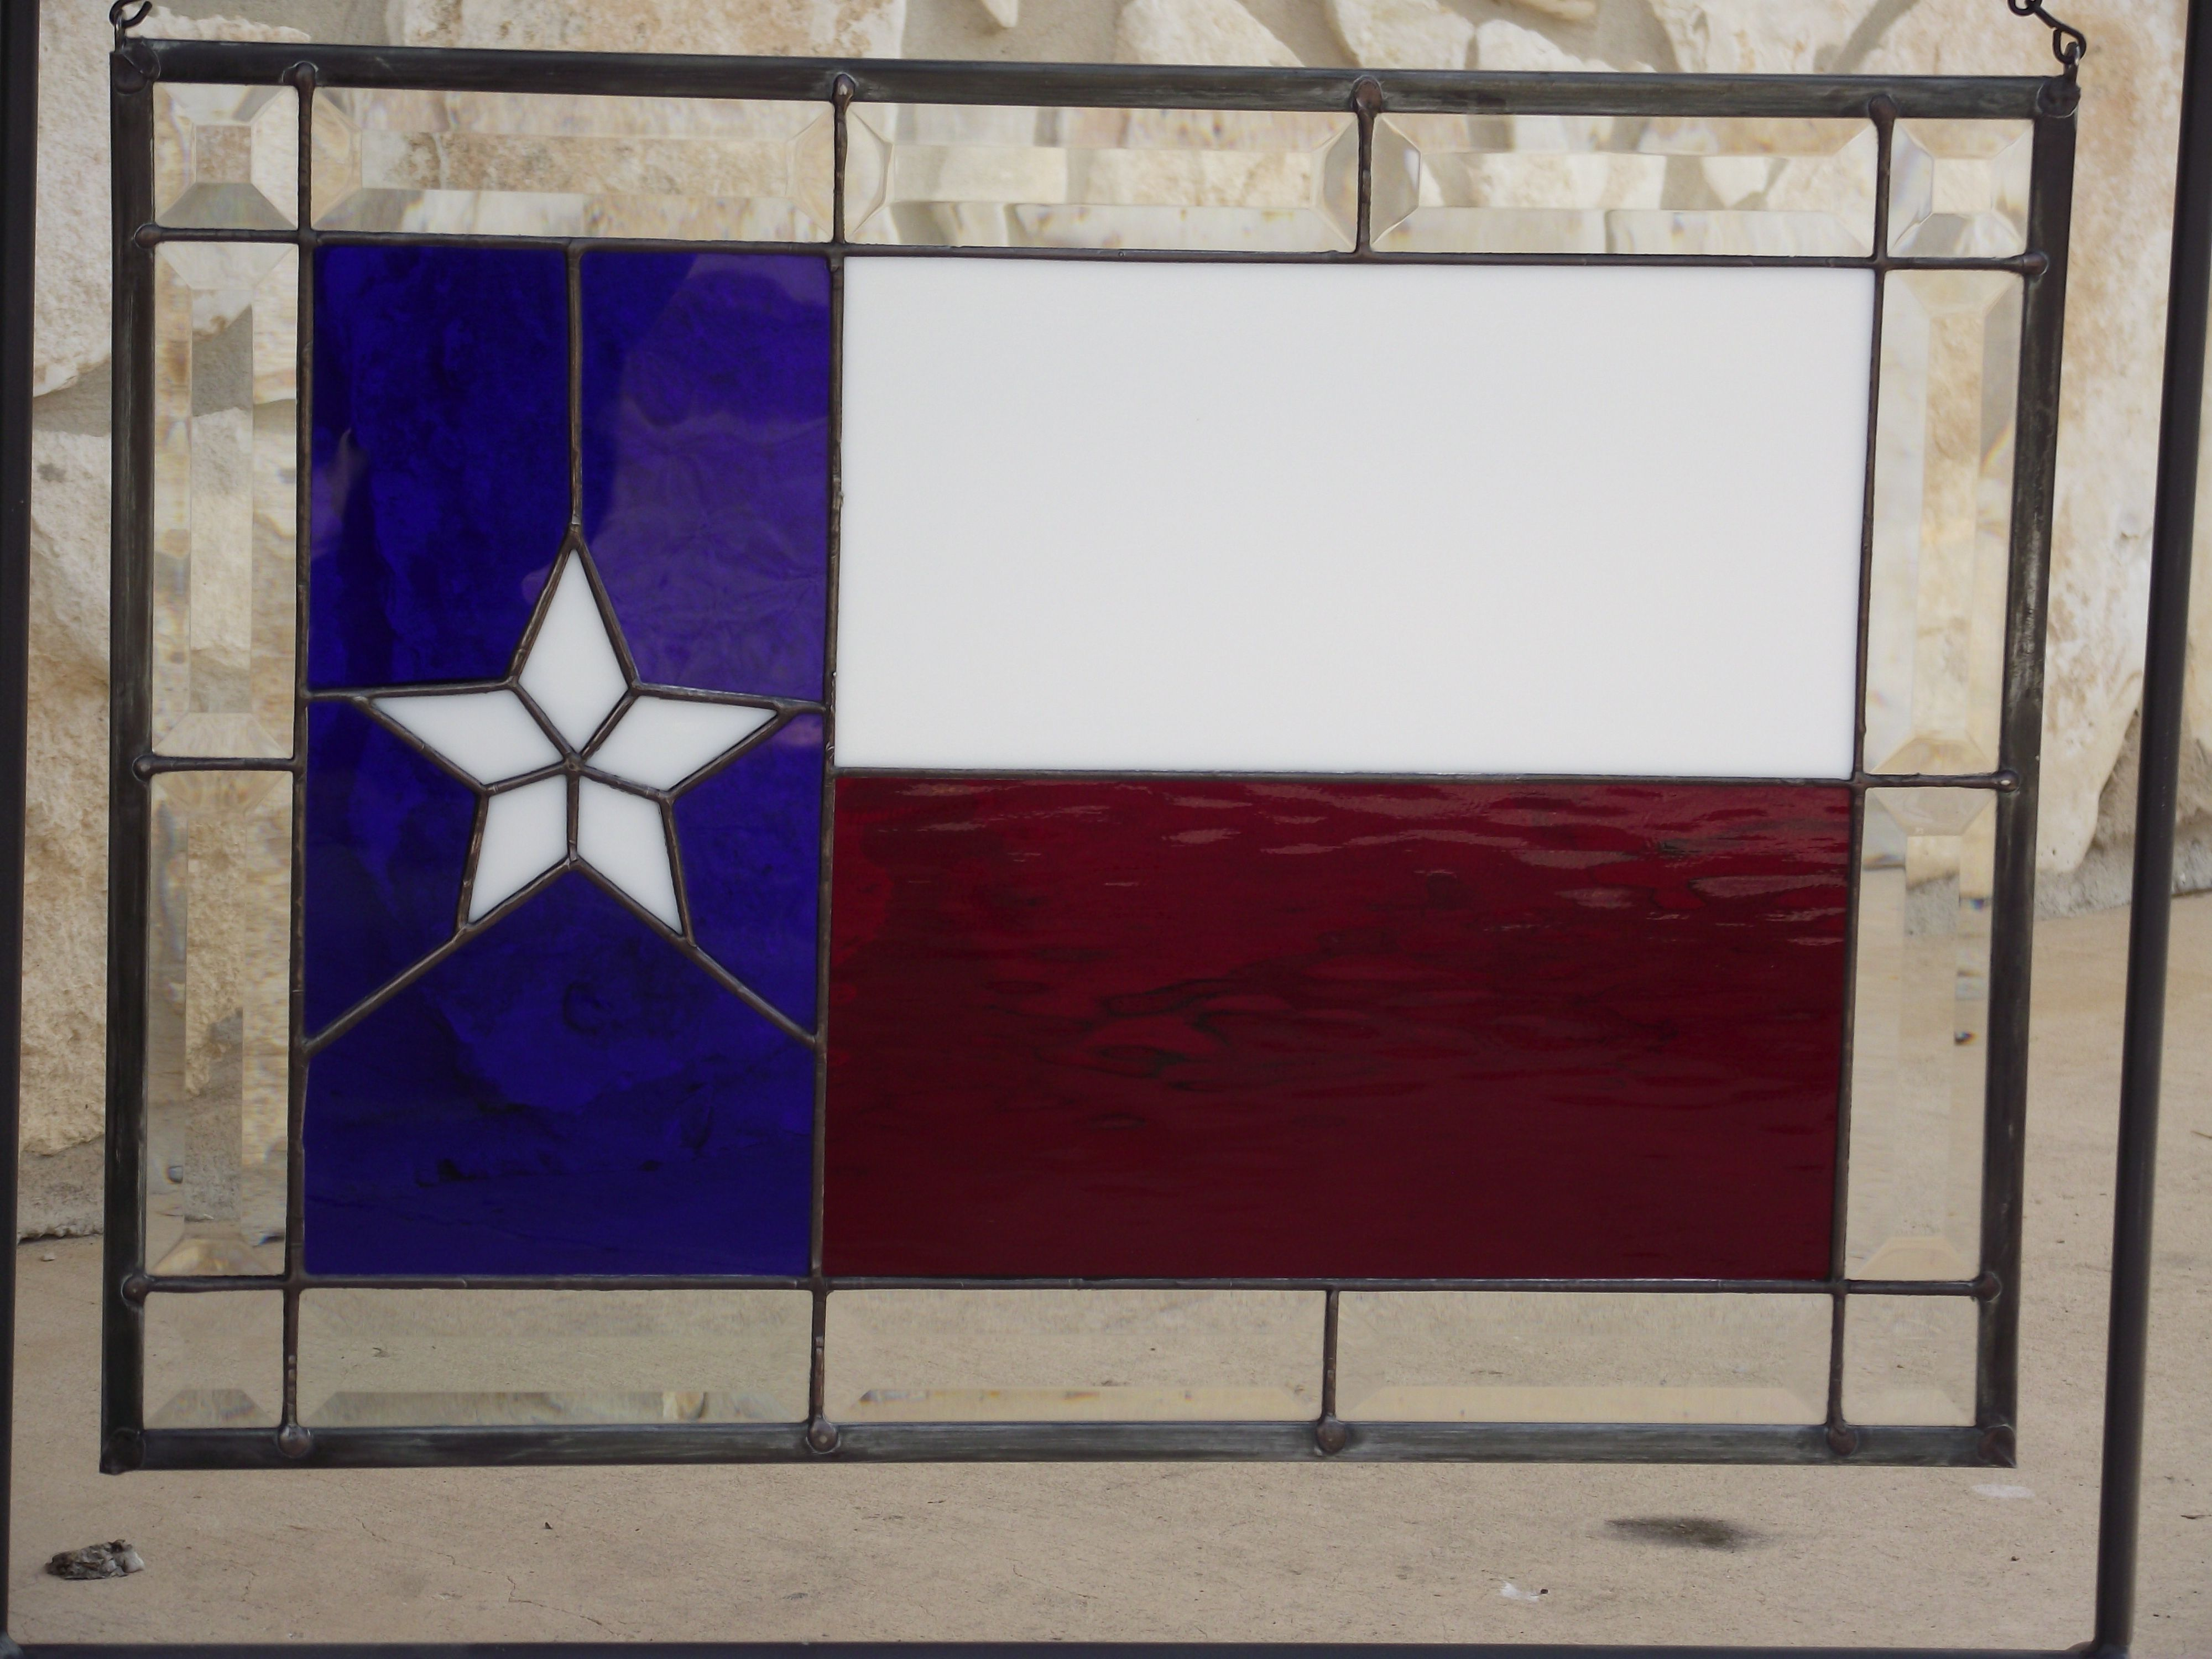 3000 #251464 95 Texas Flag W/ Bevel Border 18x13 Stained Glass/Glass Art Pint  save image Texas Star Front Doors 42074000